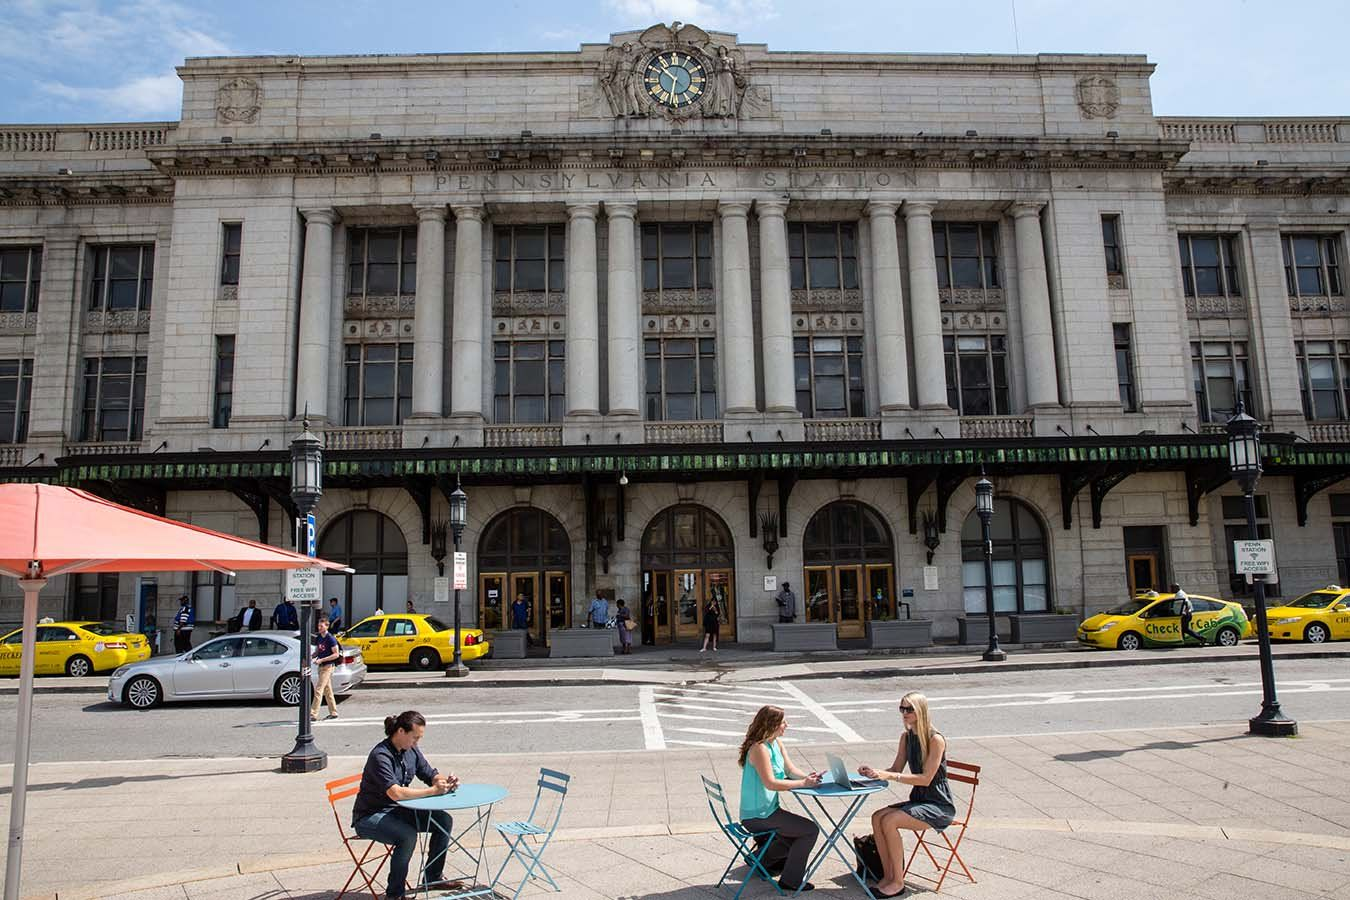 Image showing frontage of the historic Baltimore Penn Station